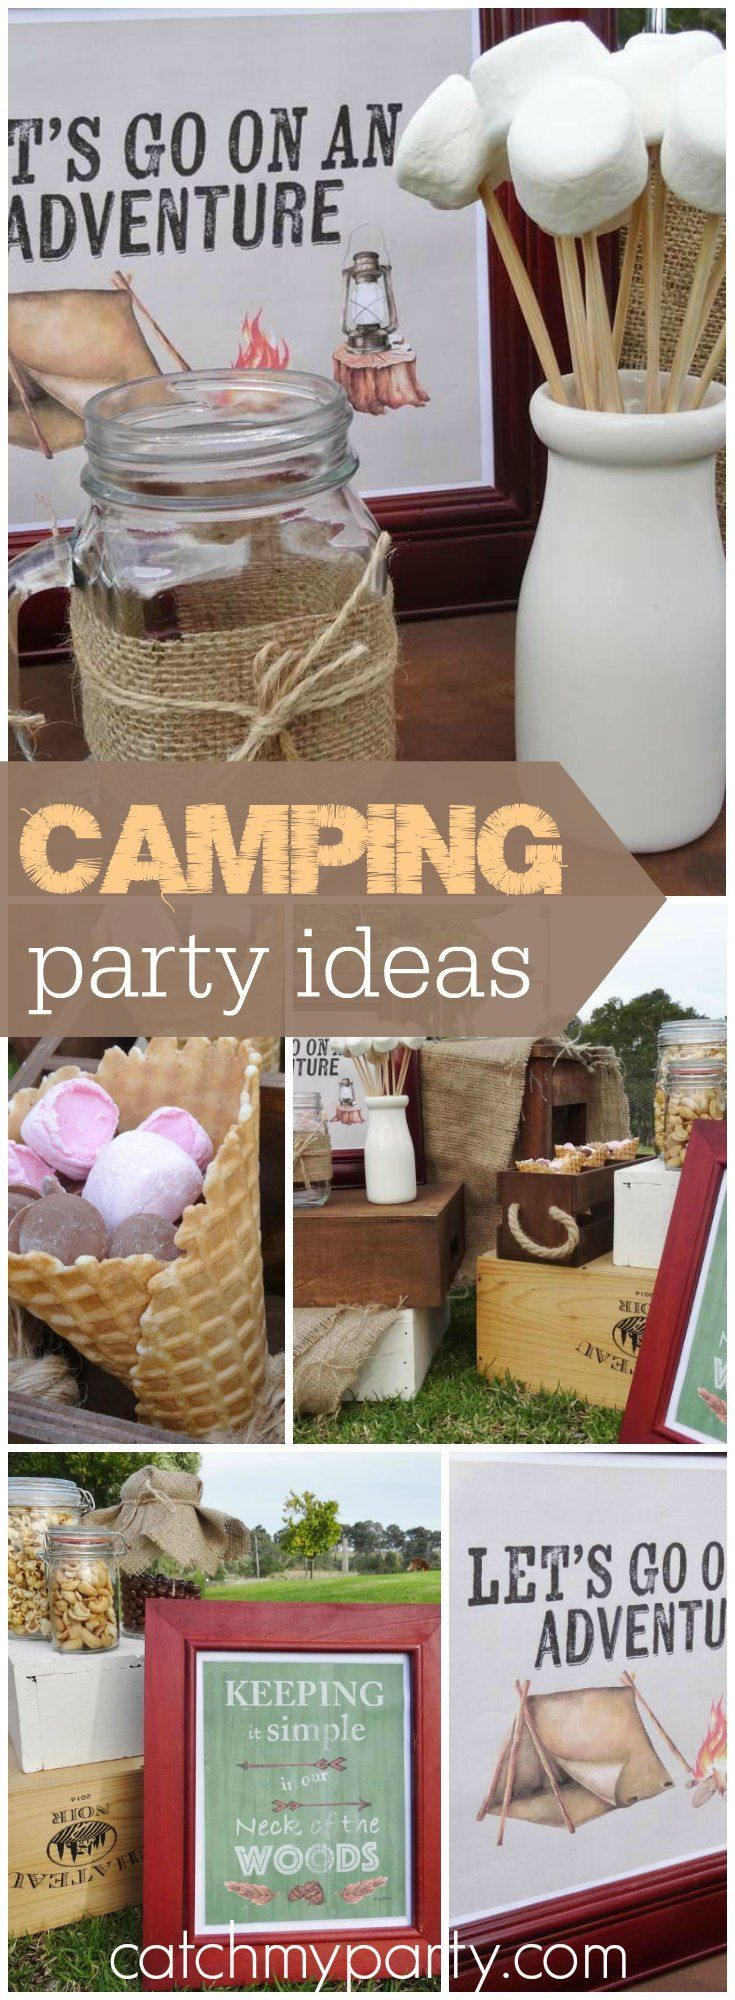 520 best Camping Party Ideas images on Pinterest